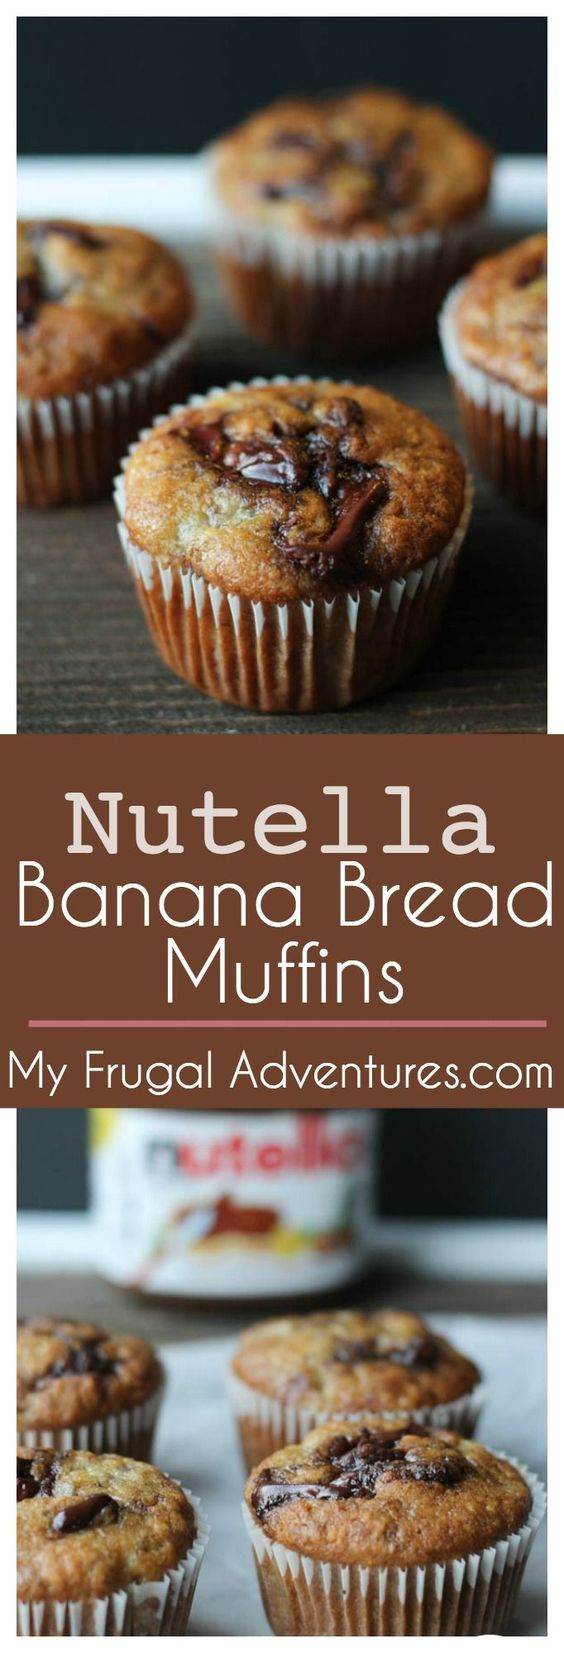 ... nutella banana bread nutella homemade gifts bananas banana bread